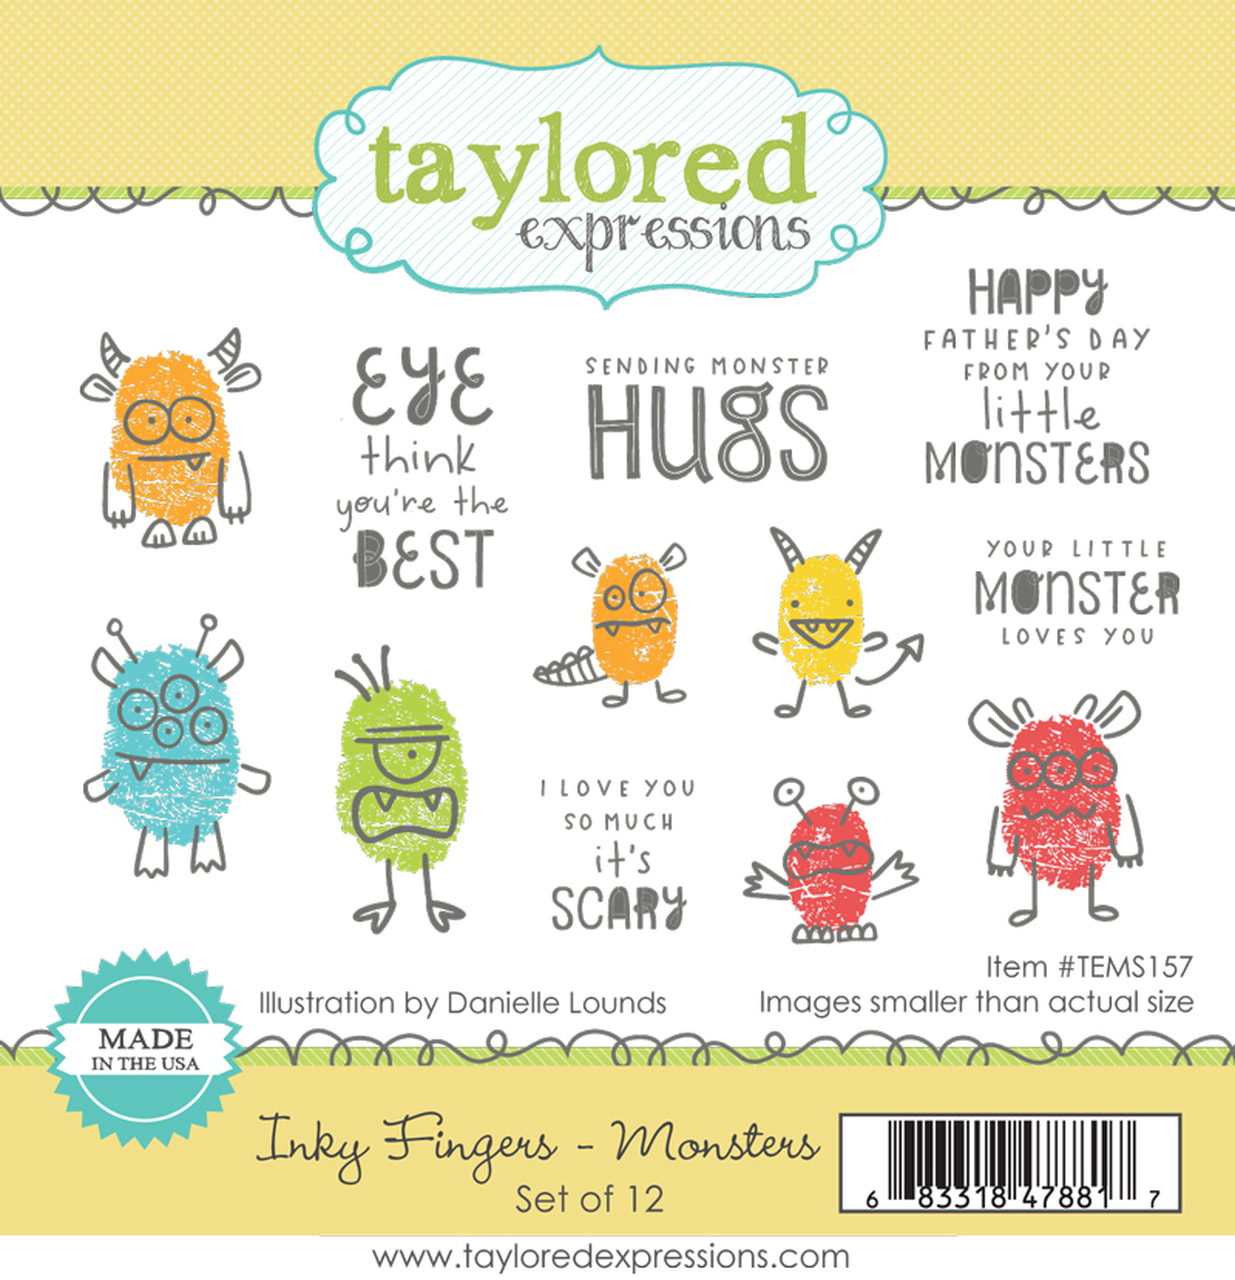 Taylored Expressions - Inky Fingers, Monsters Stamp Set